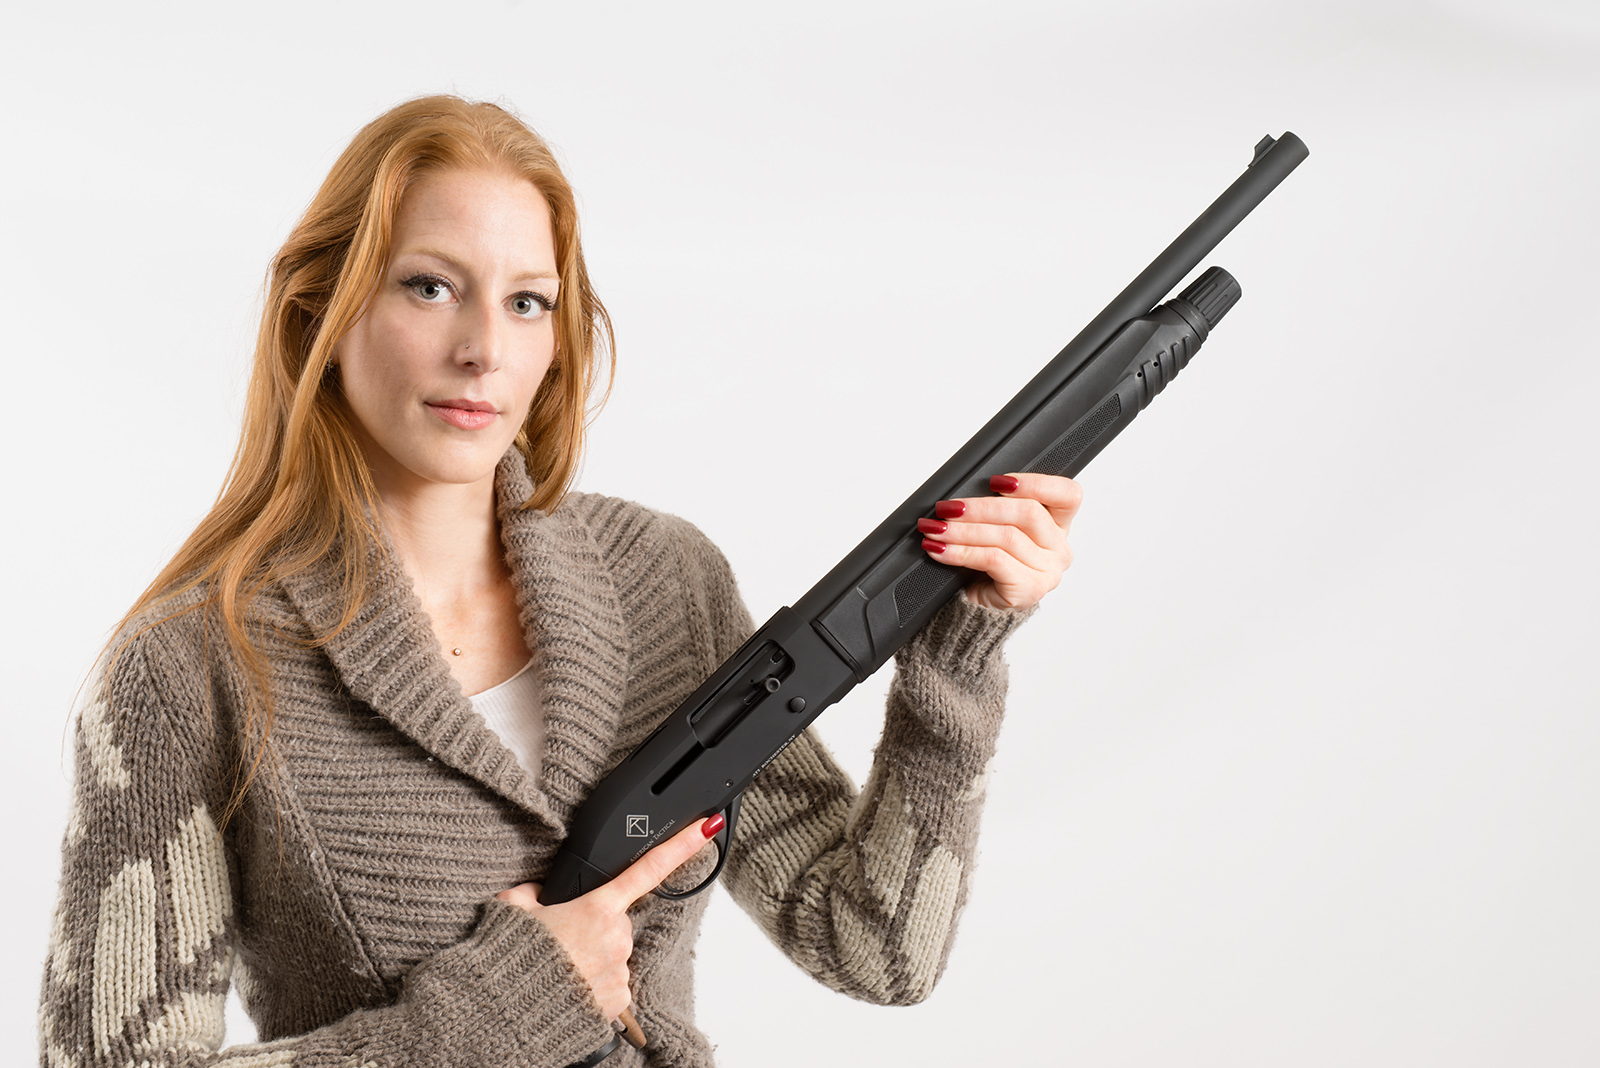 The Long and the Short of ATI SX2 12ga Shotgun